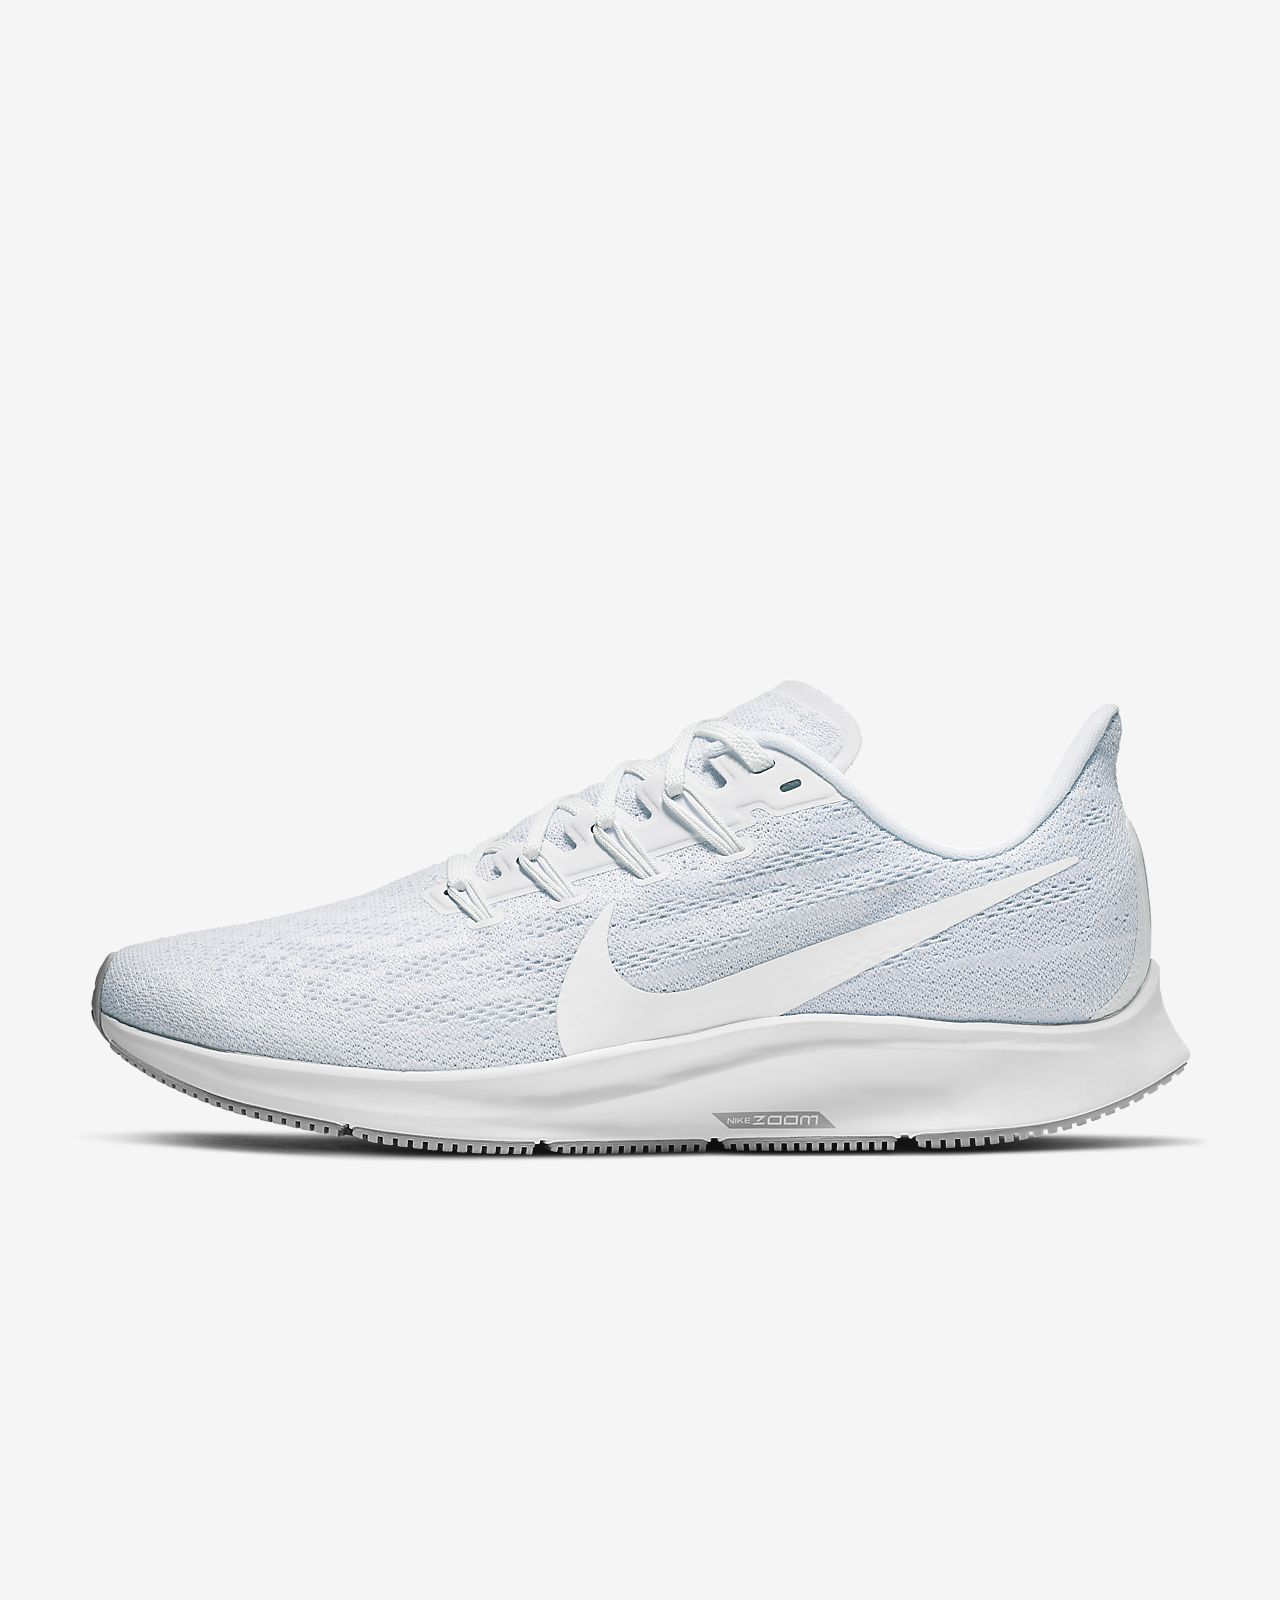 Chaussure de running Nike Air Zoom Pegasus 36 pour Homme